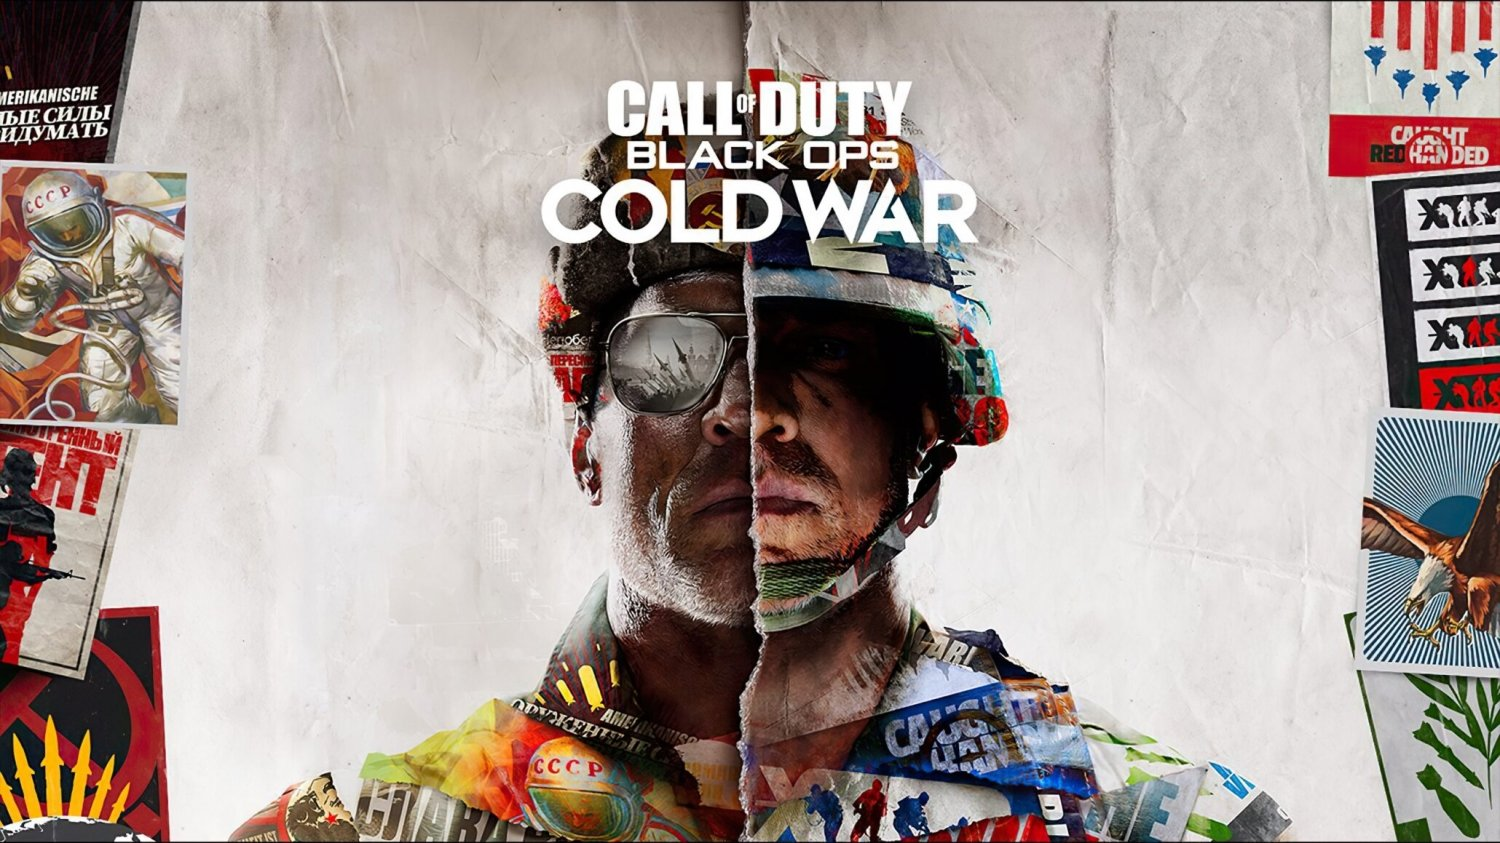 NVIDIA's new GeForce driver ready for Call of Duty: Black Ops Cold War 04   TweakTown.com